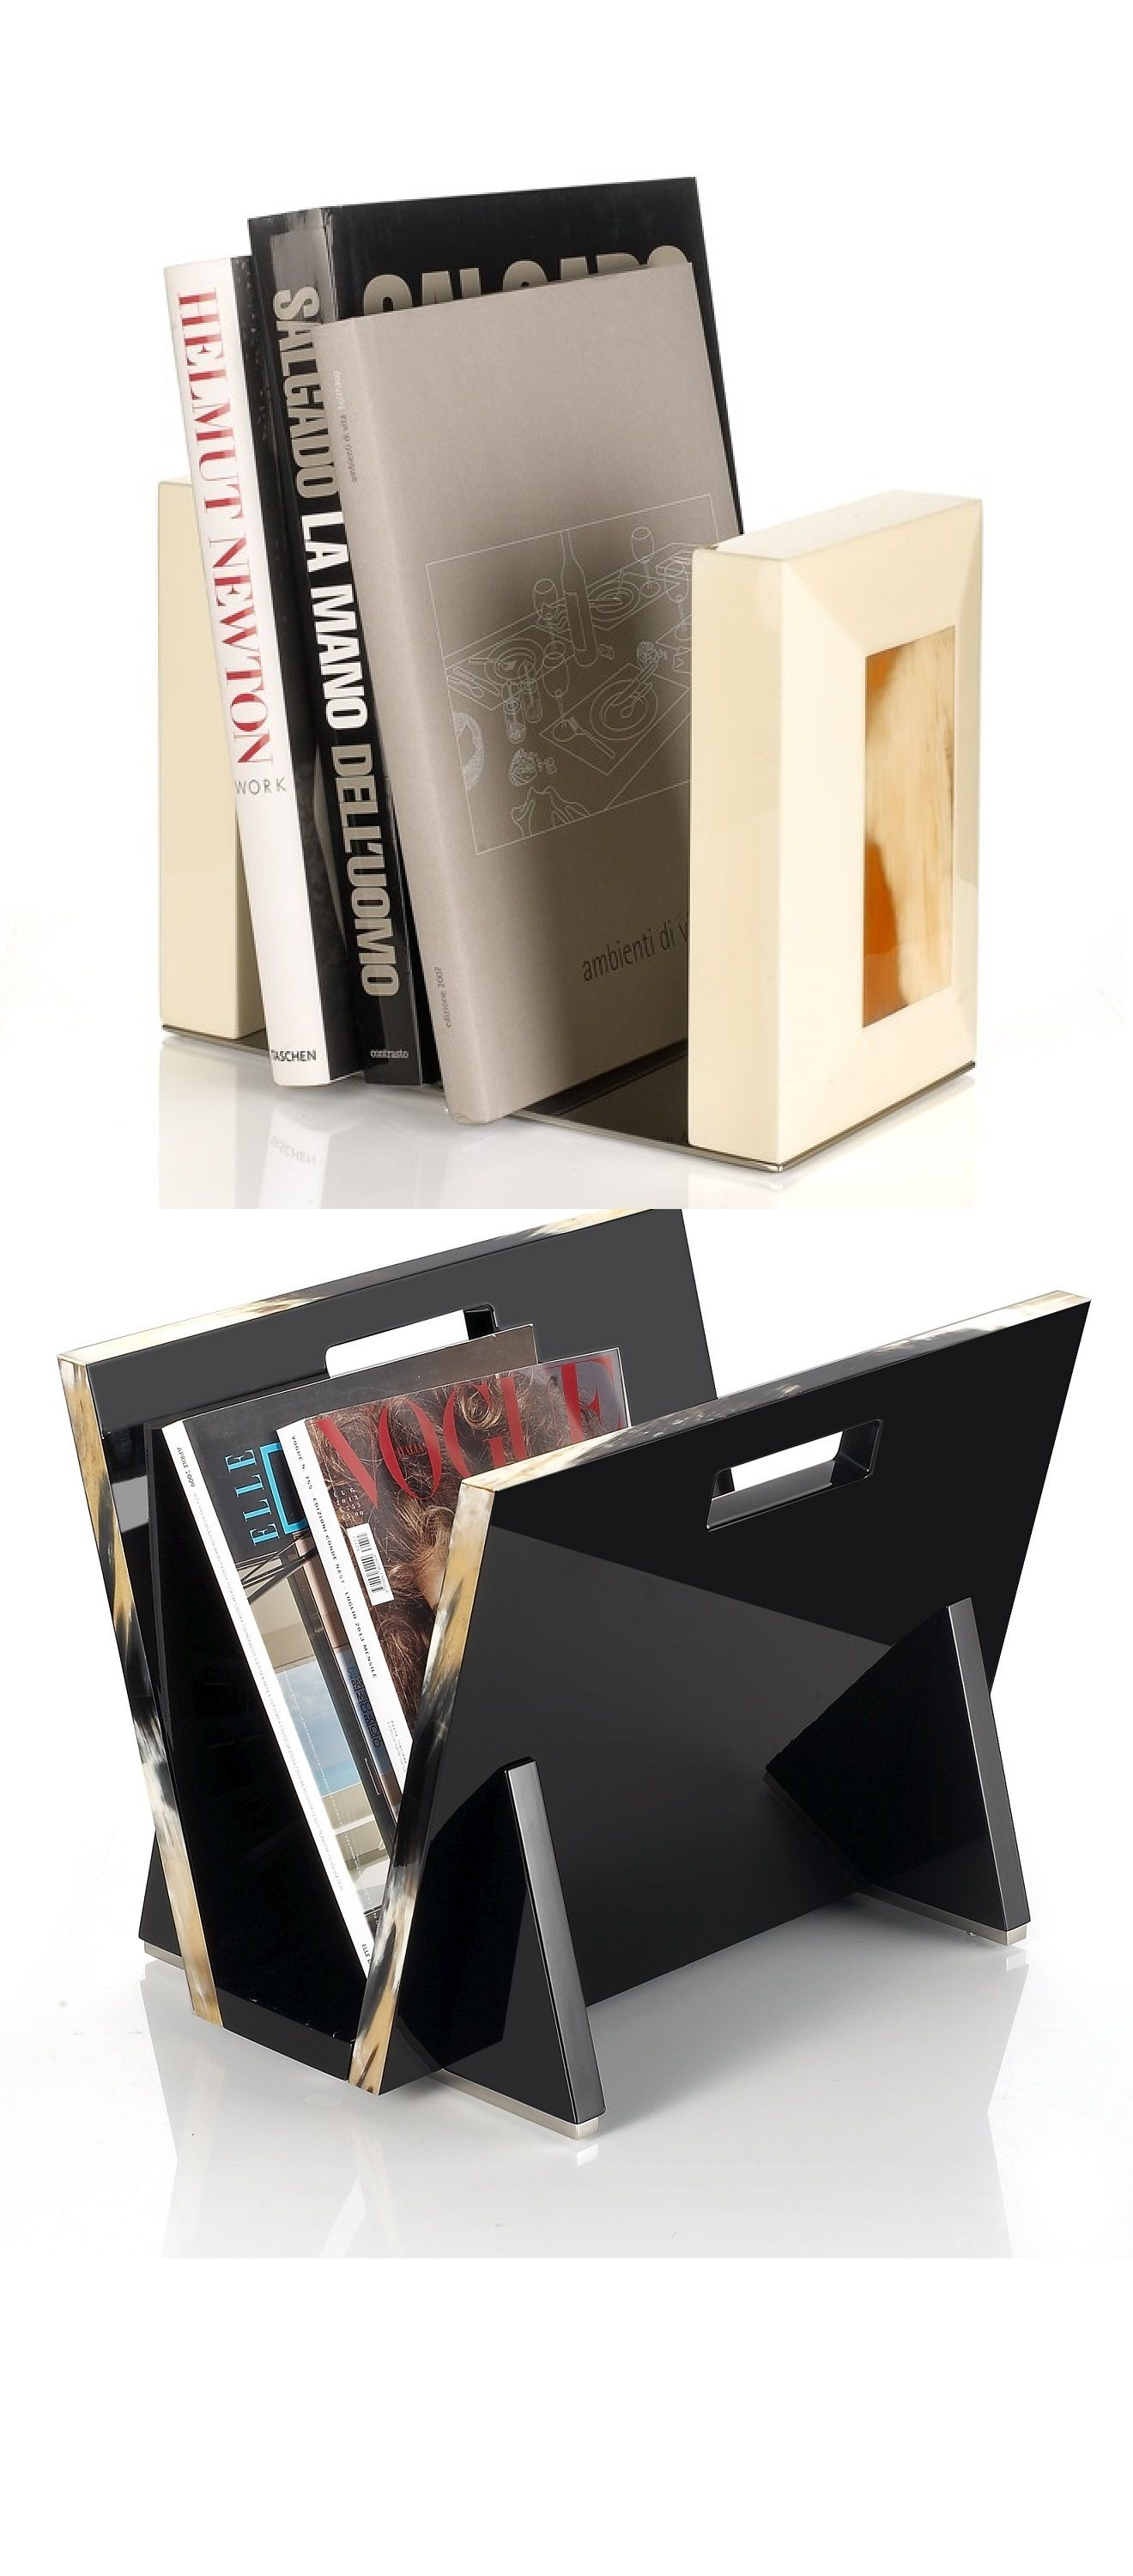 Luxury Gifts Luxury Gift Luxury Gifts Ideas Luxury Gifts For Him Luxury Gifts For Men Luxury Gi Expensive Gifts Luxury Gifts For Men Luxury Corporate Gifts